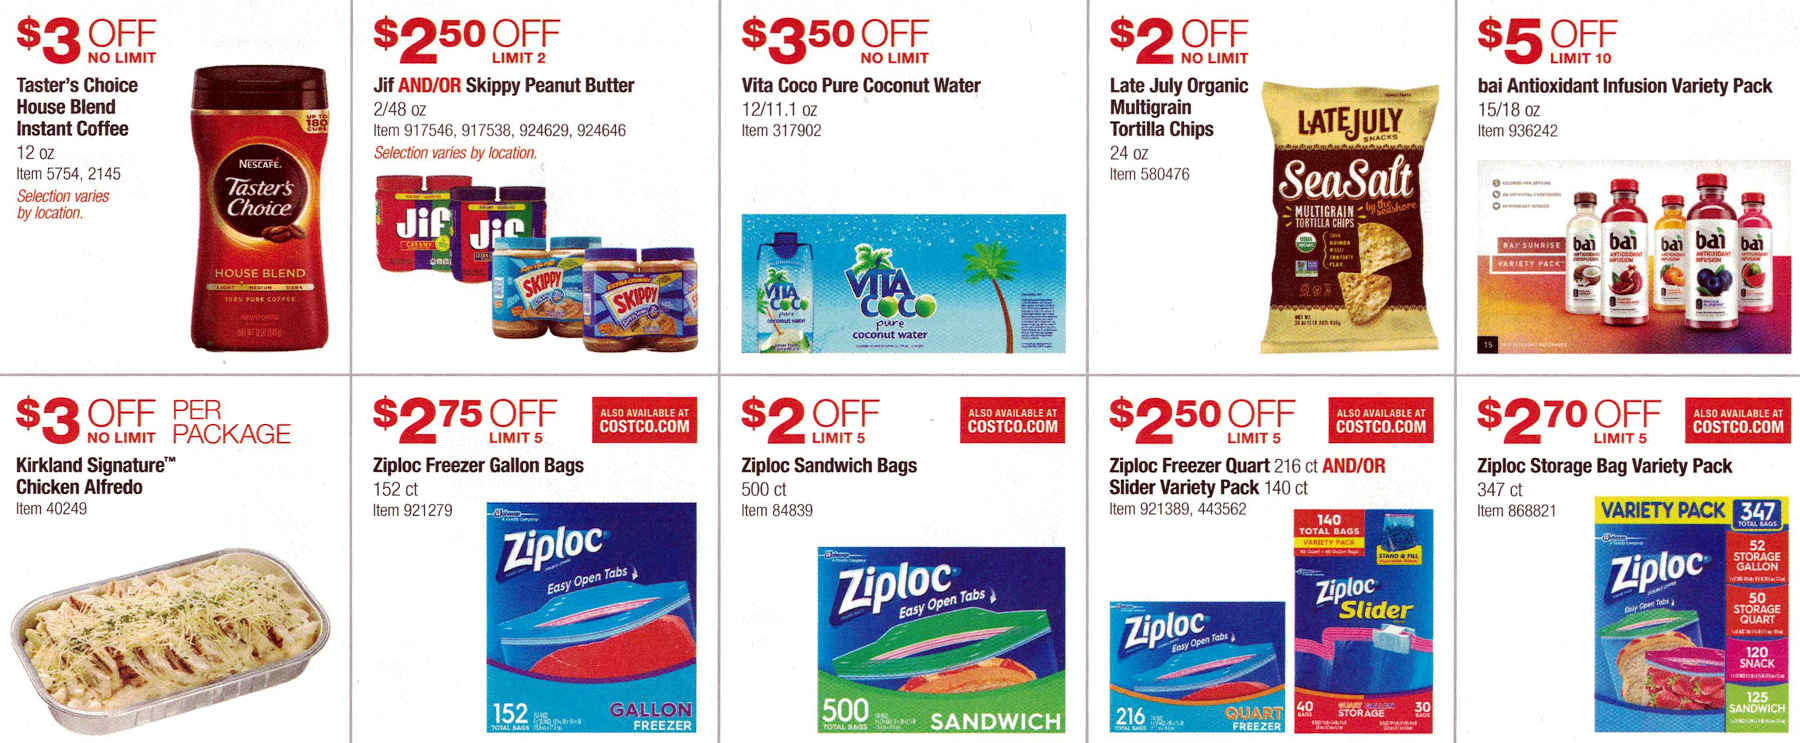 January 2017 Costco Coupon Book Page 6